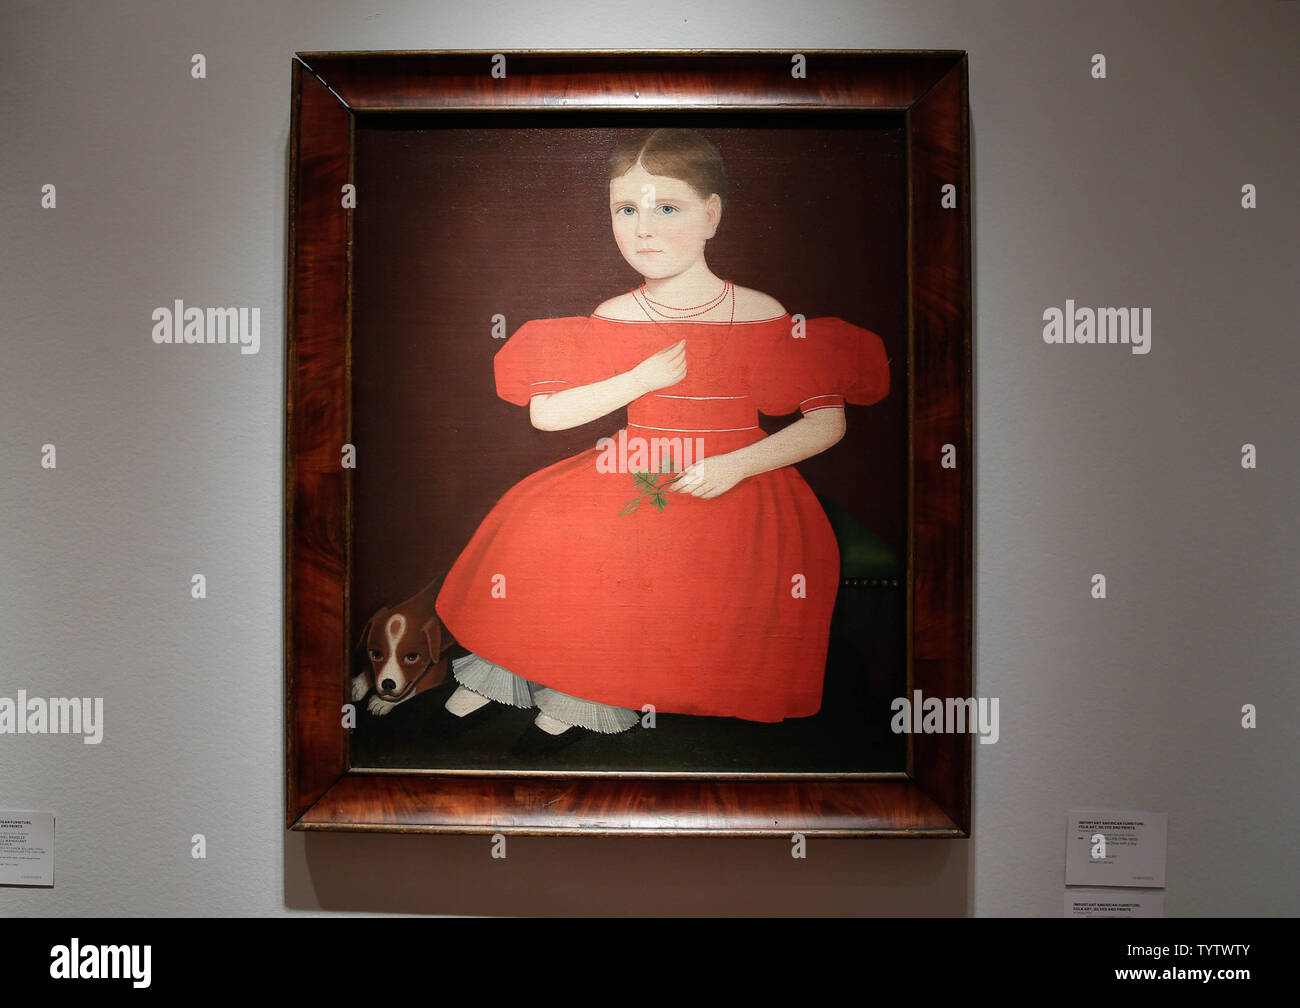 Ammi Phillips' 'Girl in a Red Dress with a Dog', is on display  at a press preview of an upcoming auction titled 'Important American Furniture, Folk Art, Silver and Prints' at Christie's in New York City on January 12, 2019. The auction features Ammi Phillips' 'Girl in a Red Dress with a Dog', and Edward Hicks' 'Peaceable Kingdom, both estd $800,000 - $1.2 million. The auction takes place on January 17th and 18th.     Photo by John Angelillo/UPI - Stock Image